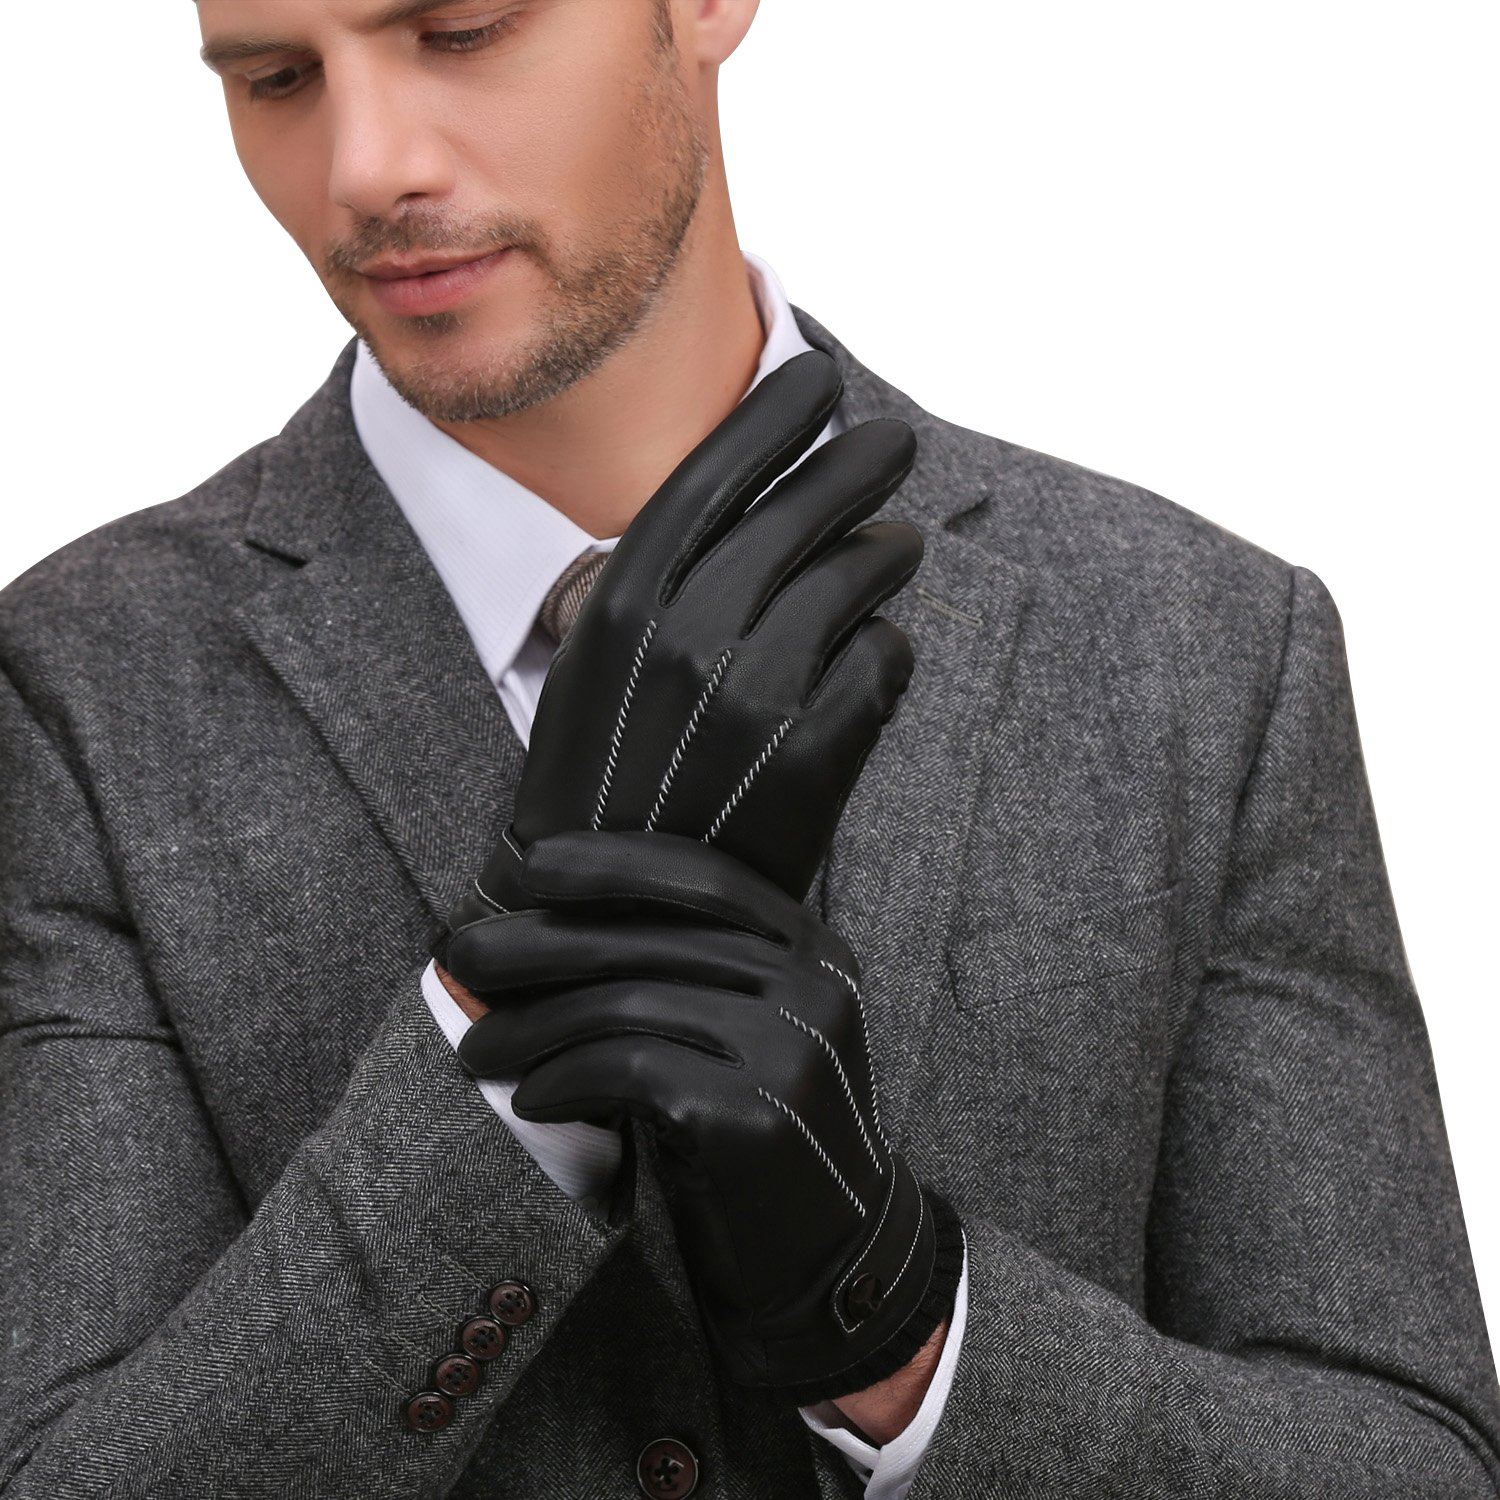 GSG Mens Luxury Touchscreen Spain Nappa Leather Gloves Driving Texting Motorcycle Winter Warm Gloves Gifts